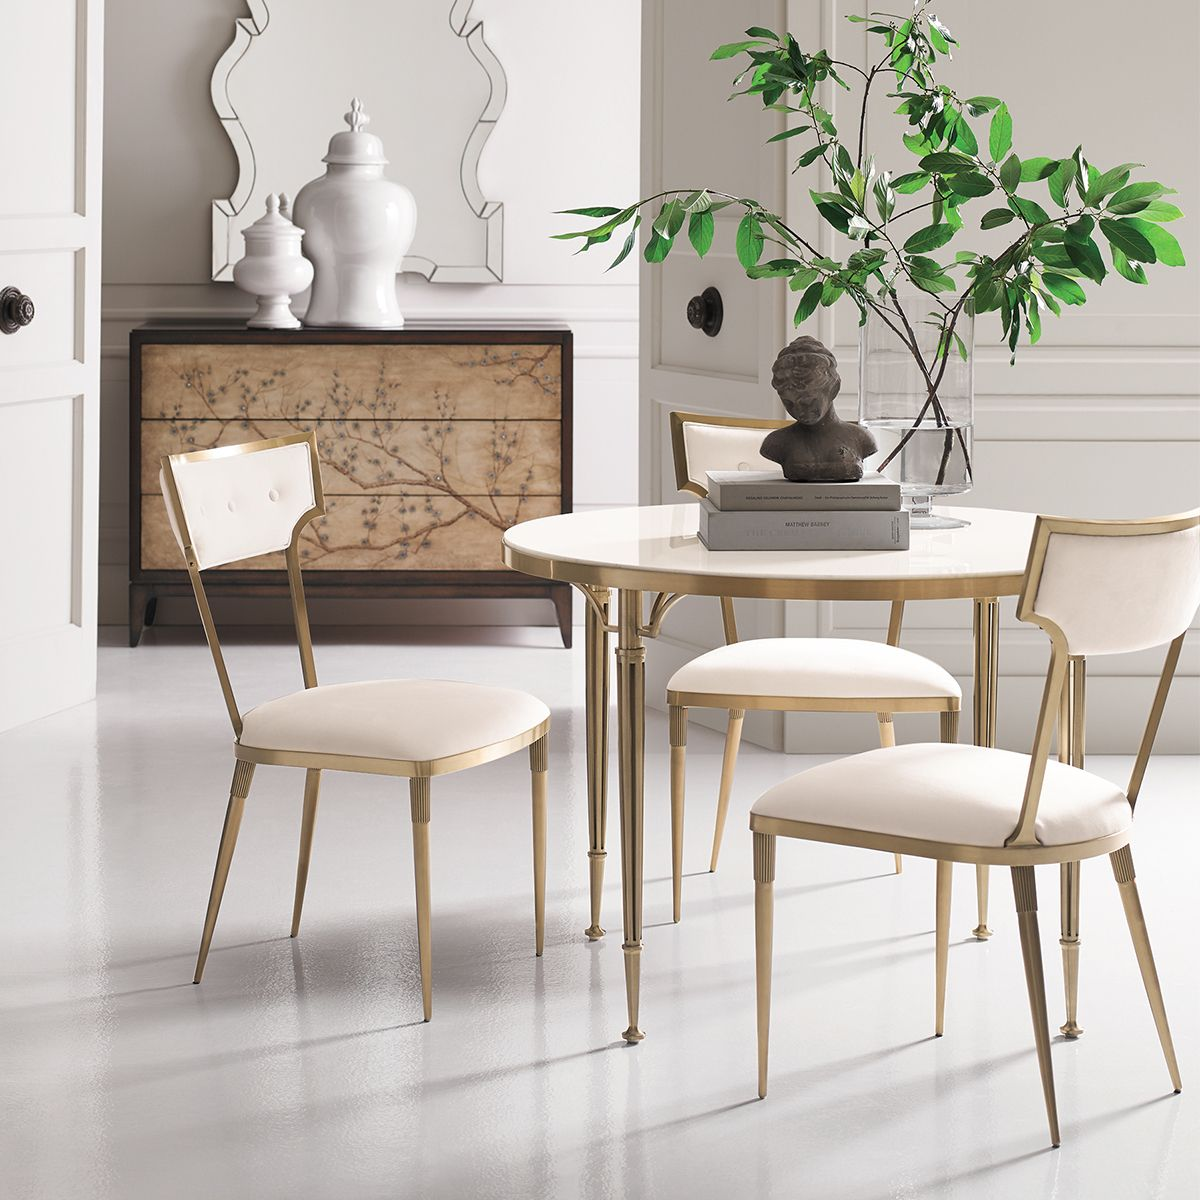 The Delicate Stature Of My Hewitt Gold Dining Chair Makes For A Chic  Interior Aesthetic Indeed